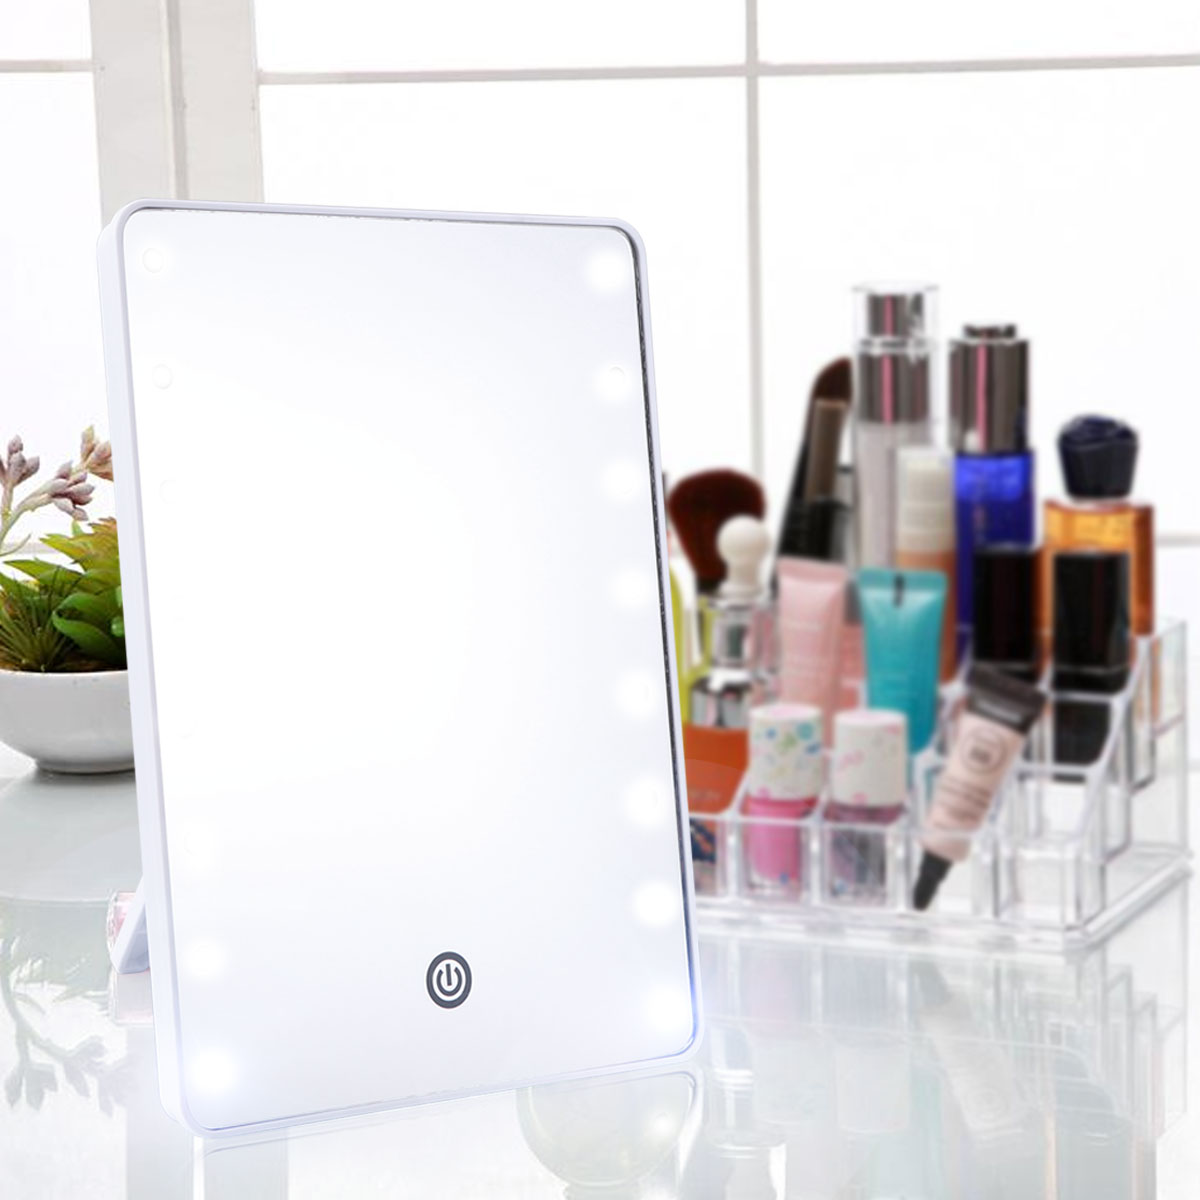 Makeup Mirror With 16 LEDs Cosmetic Mirror With Touch Dimmer Switch Battery Operated Vanity Mirror For Tabletop Bathroom